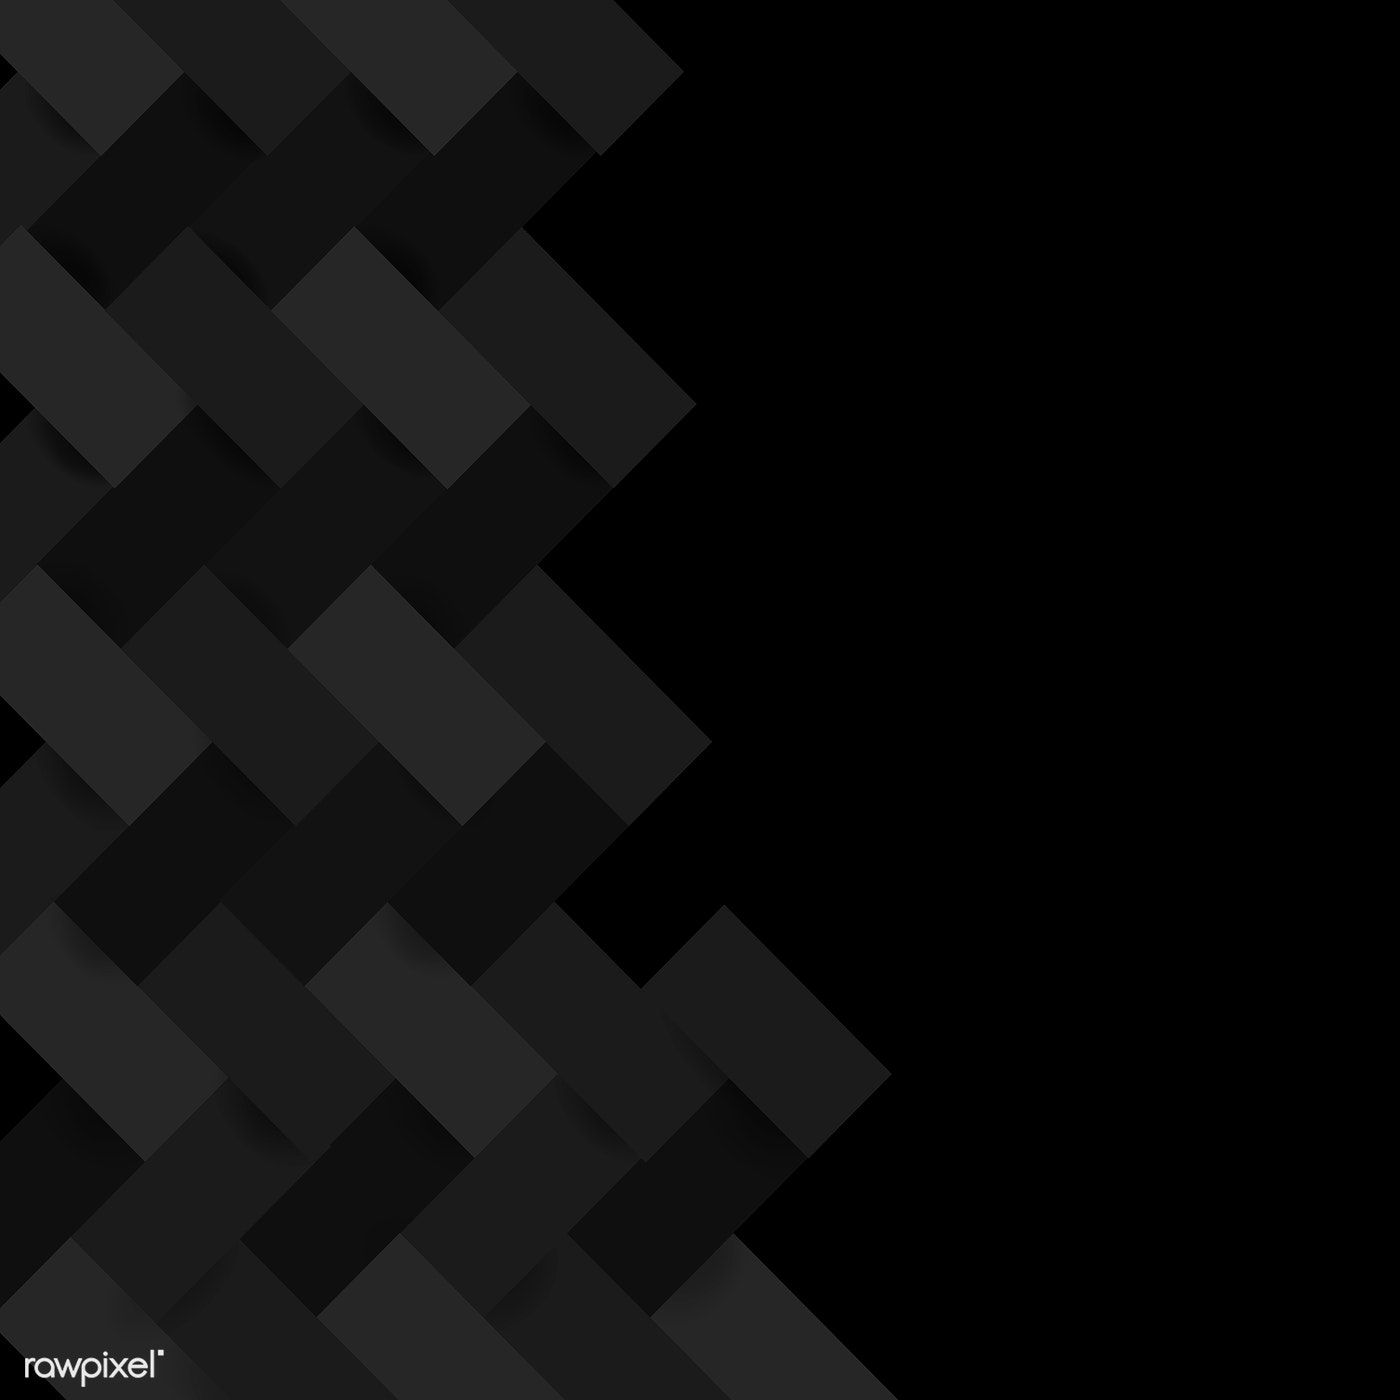 Black Modern Background Design Vector Free Image By Rawpixel Com